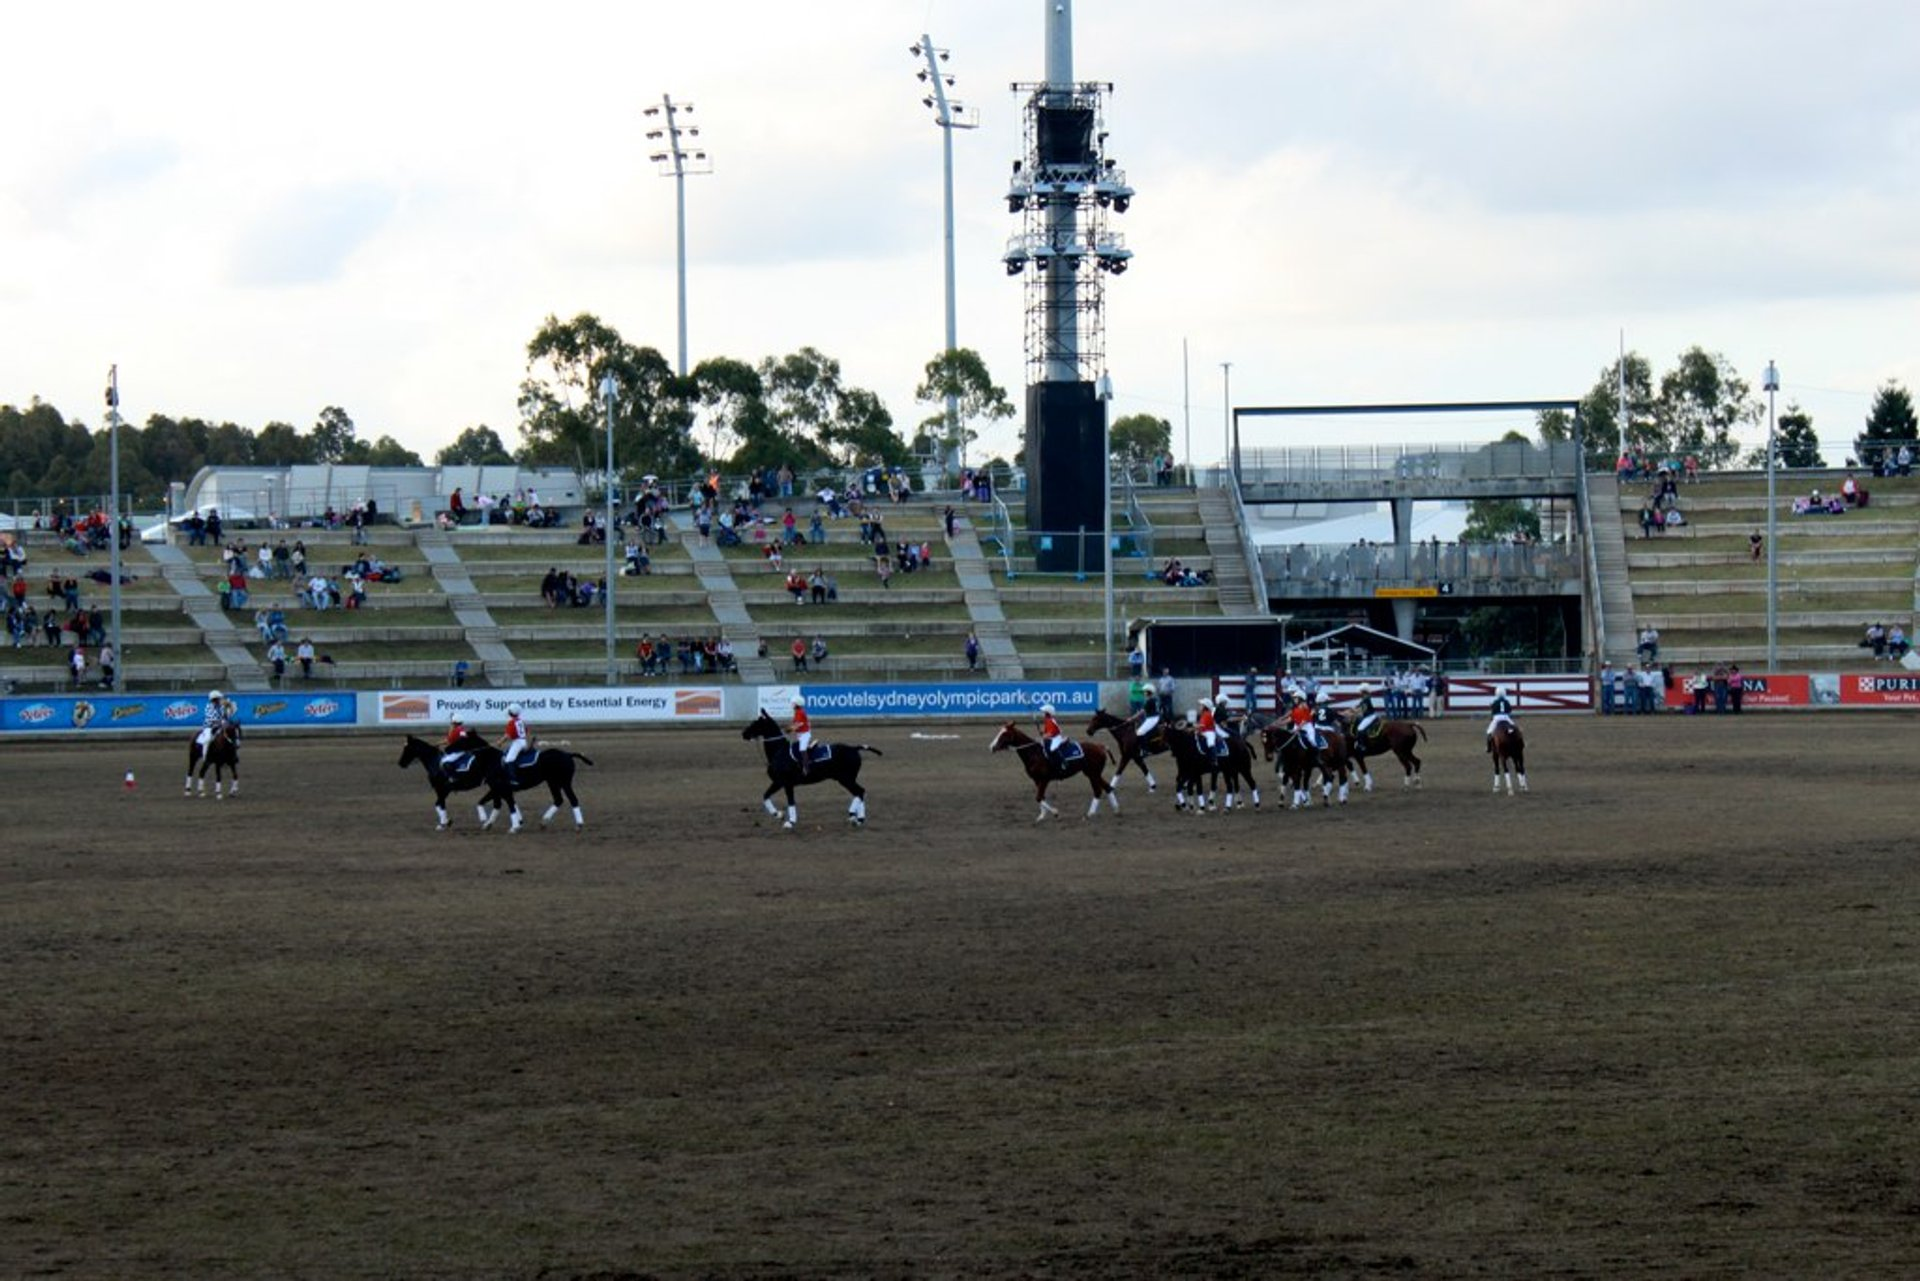 Sydney Easter Show Polo 2019